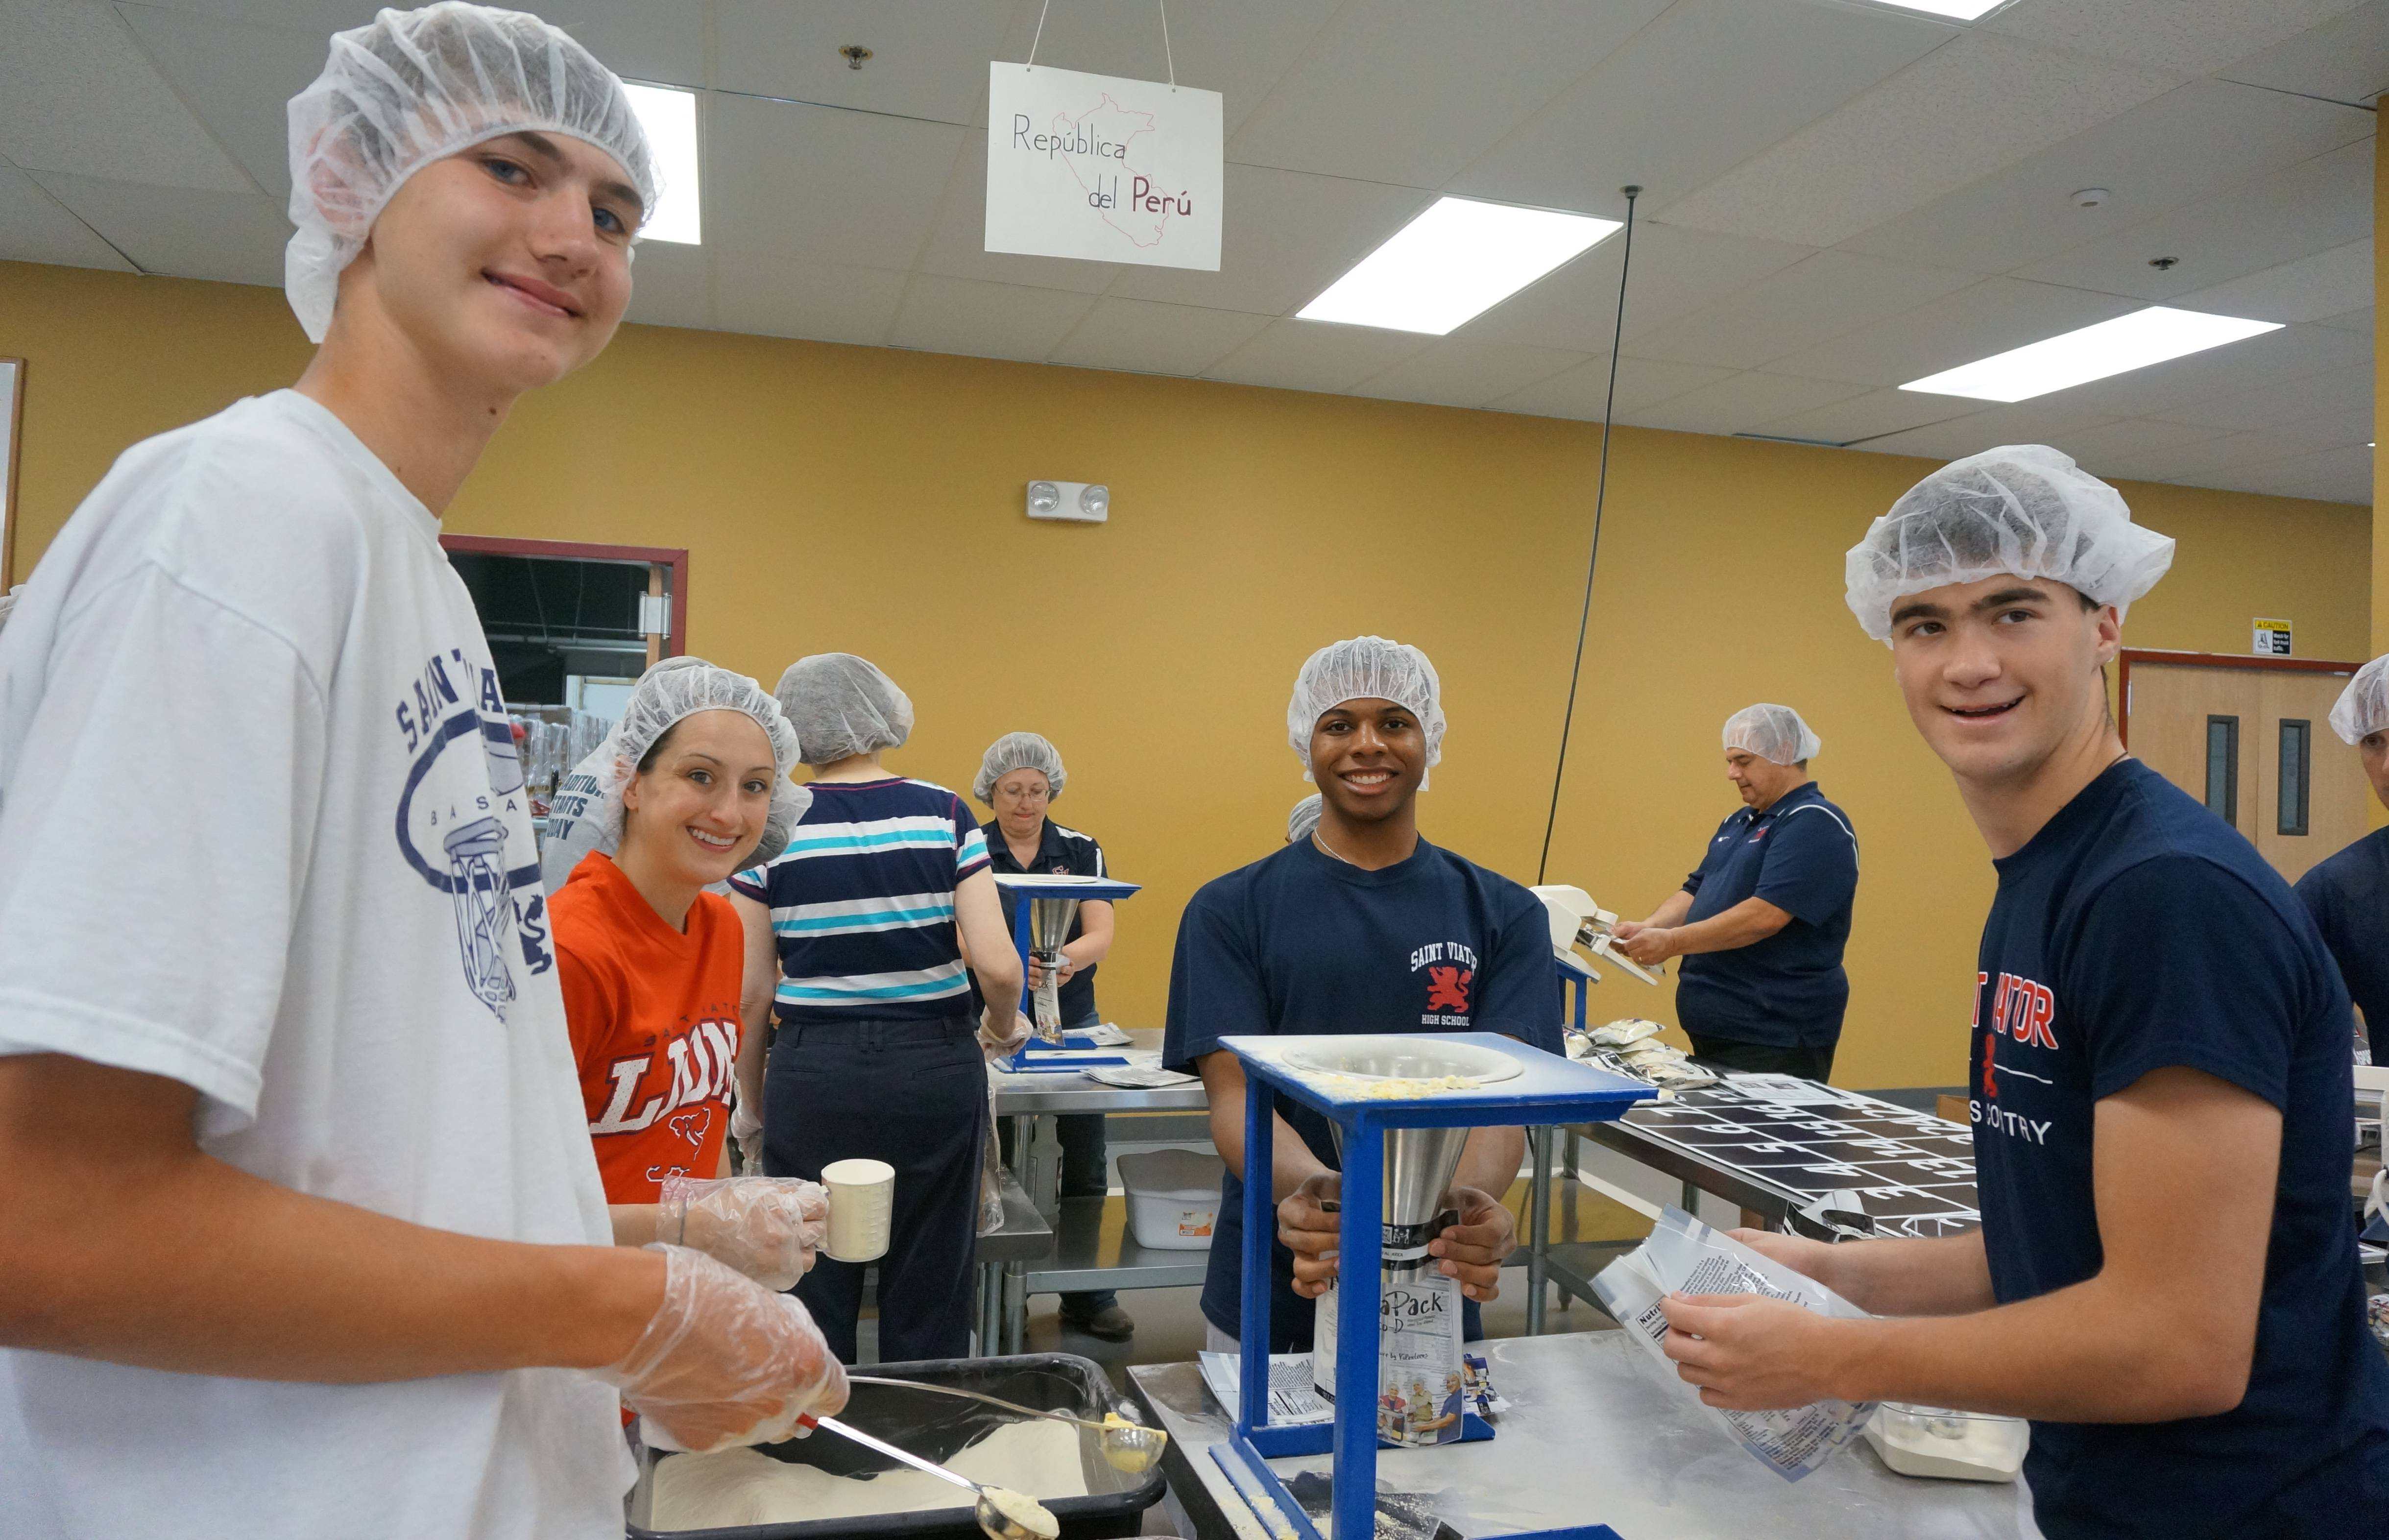 Participating in the meal-packing event at Feed My Starving Children in Libertyville are St. Viator alumni (l to r) Matt Trimberger, Barrington, Sara Wells, Palatine, Paul Lewis, Hoffman Estates and Patrick Spanier, Mount Prospect.Toni Antonetti